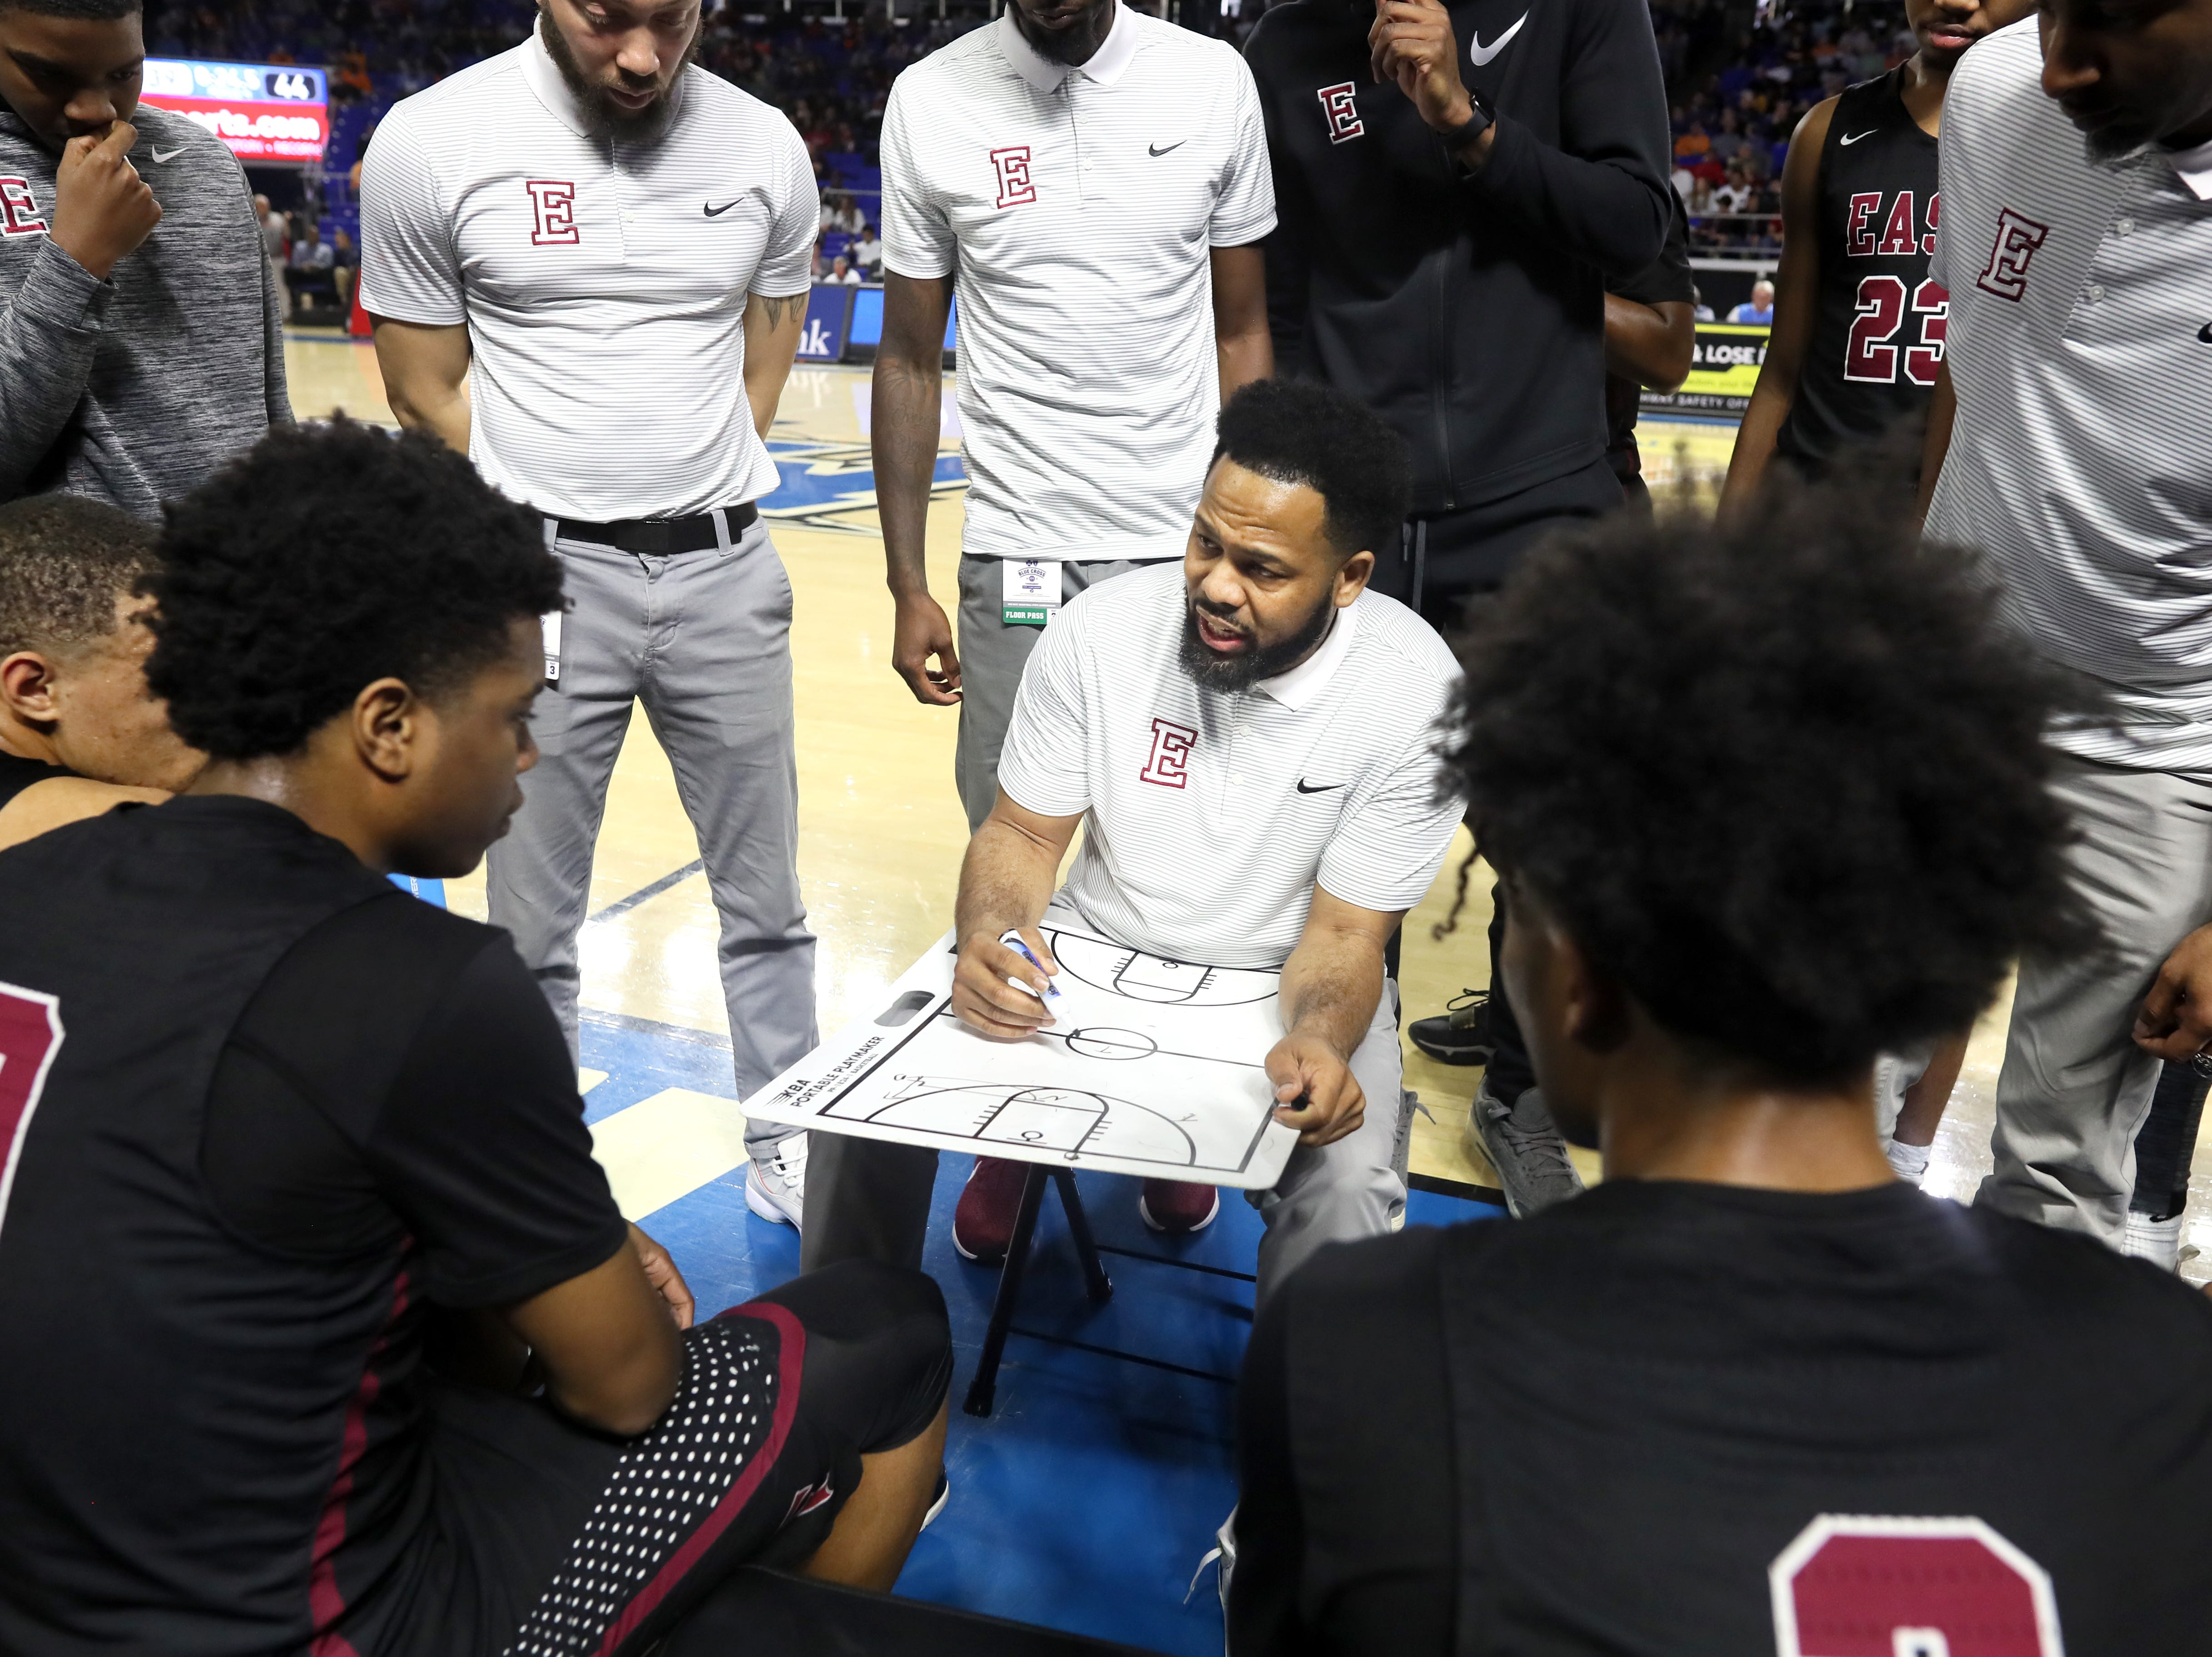 Memphis East Head Coach Jevonte Holmes talks to his team during a timeout in their game against Brentwood in the Class AAA boys basketball state semifinal at the Murphy Center in Murfreesboro, Tenn. on Friday, March 15, 2019.